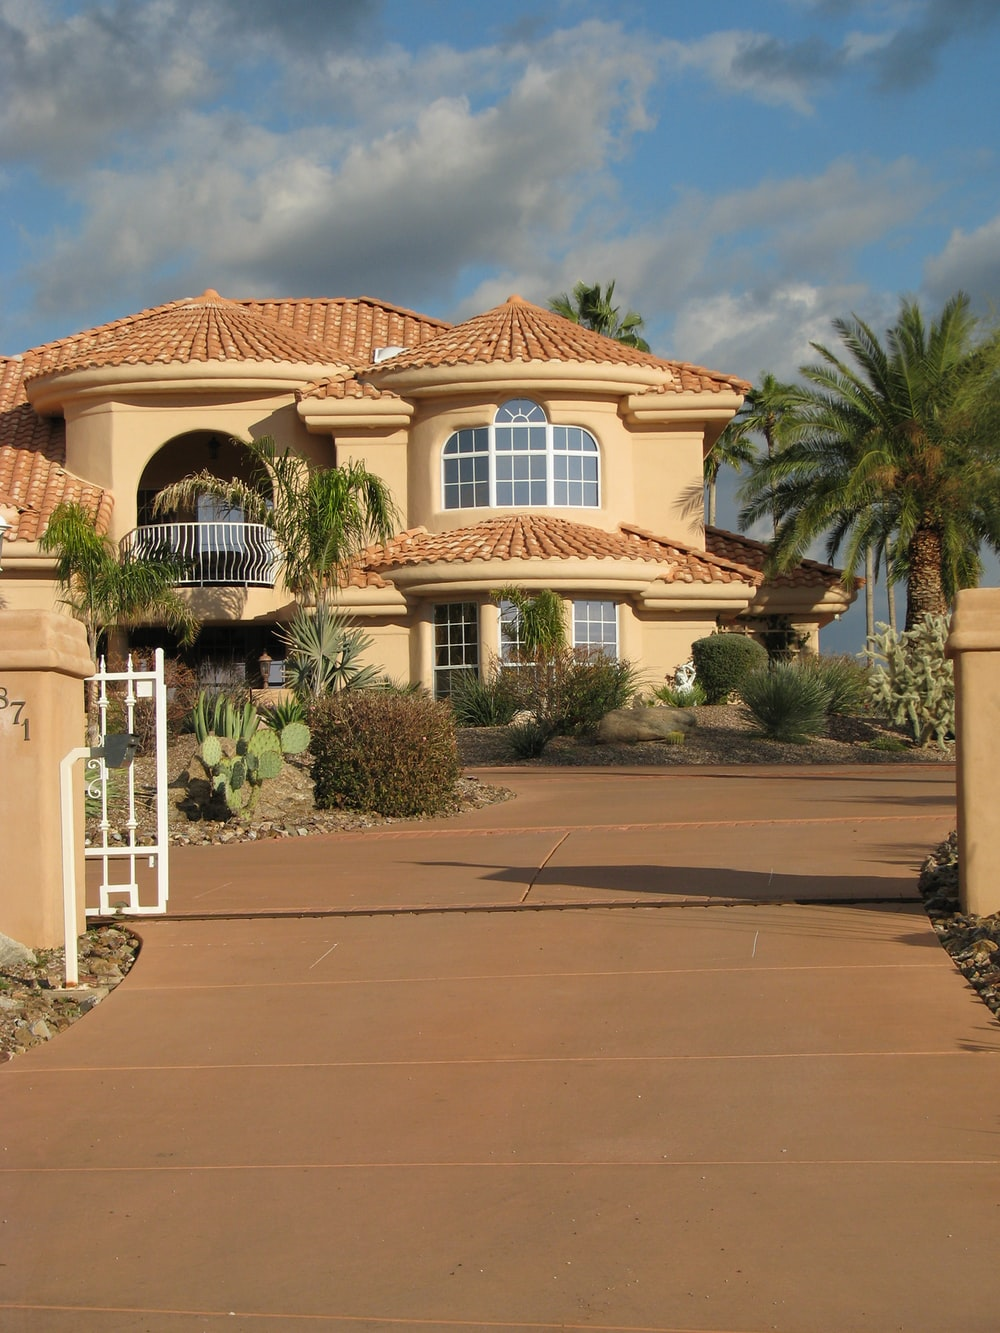 beige painted 2-storey house